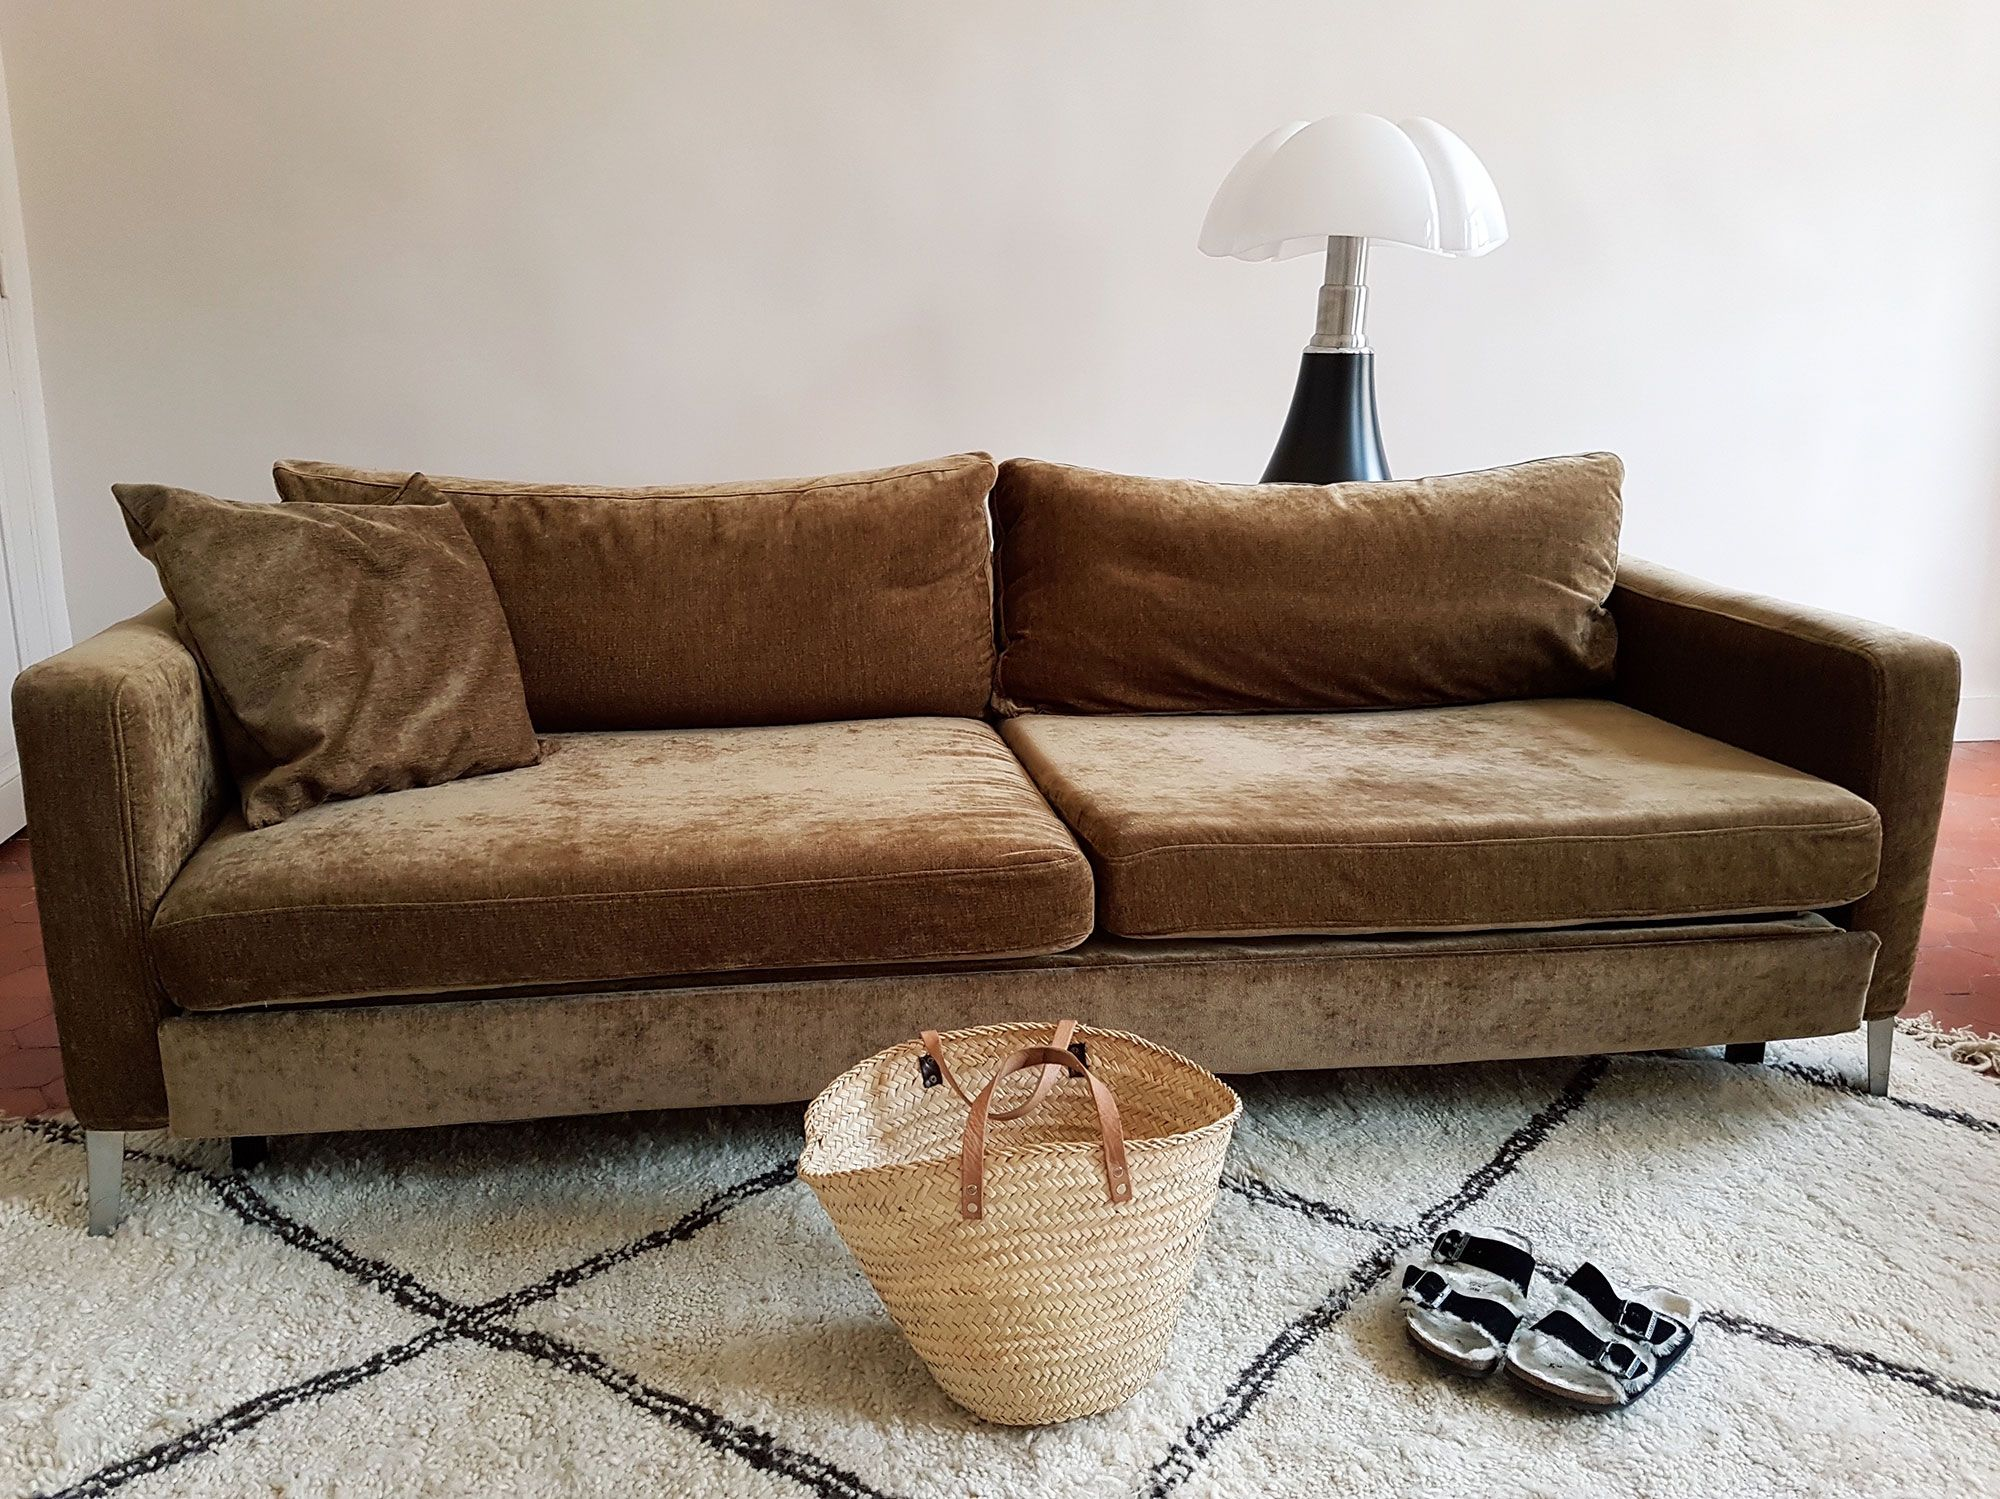 Fashion Blogger Aurelia Mamou S Stunning 70s Inspired Living Room